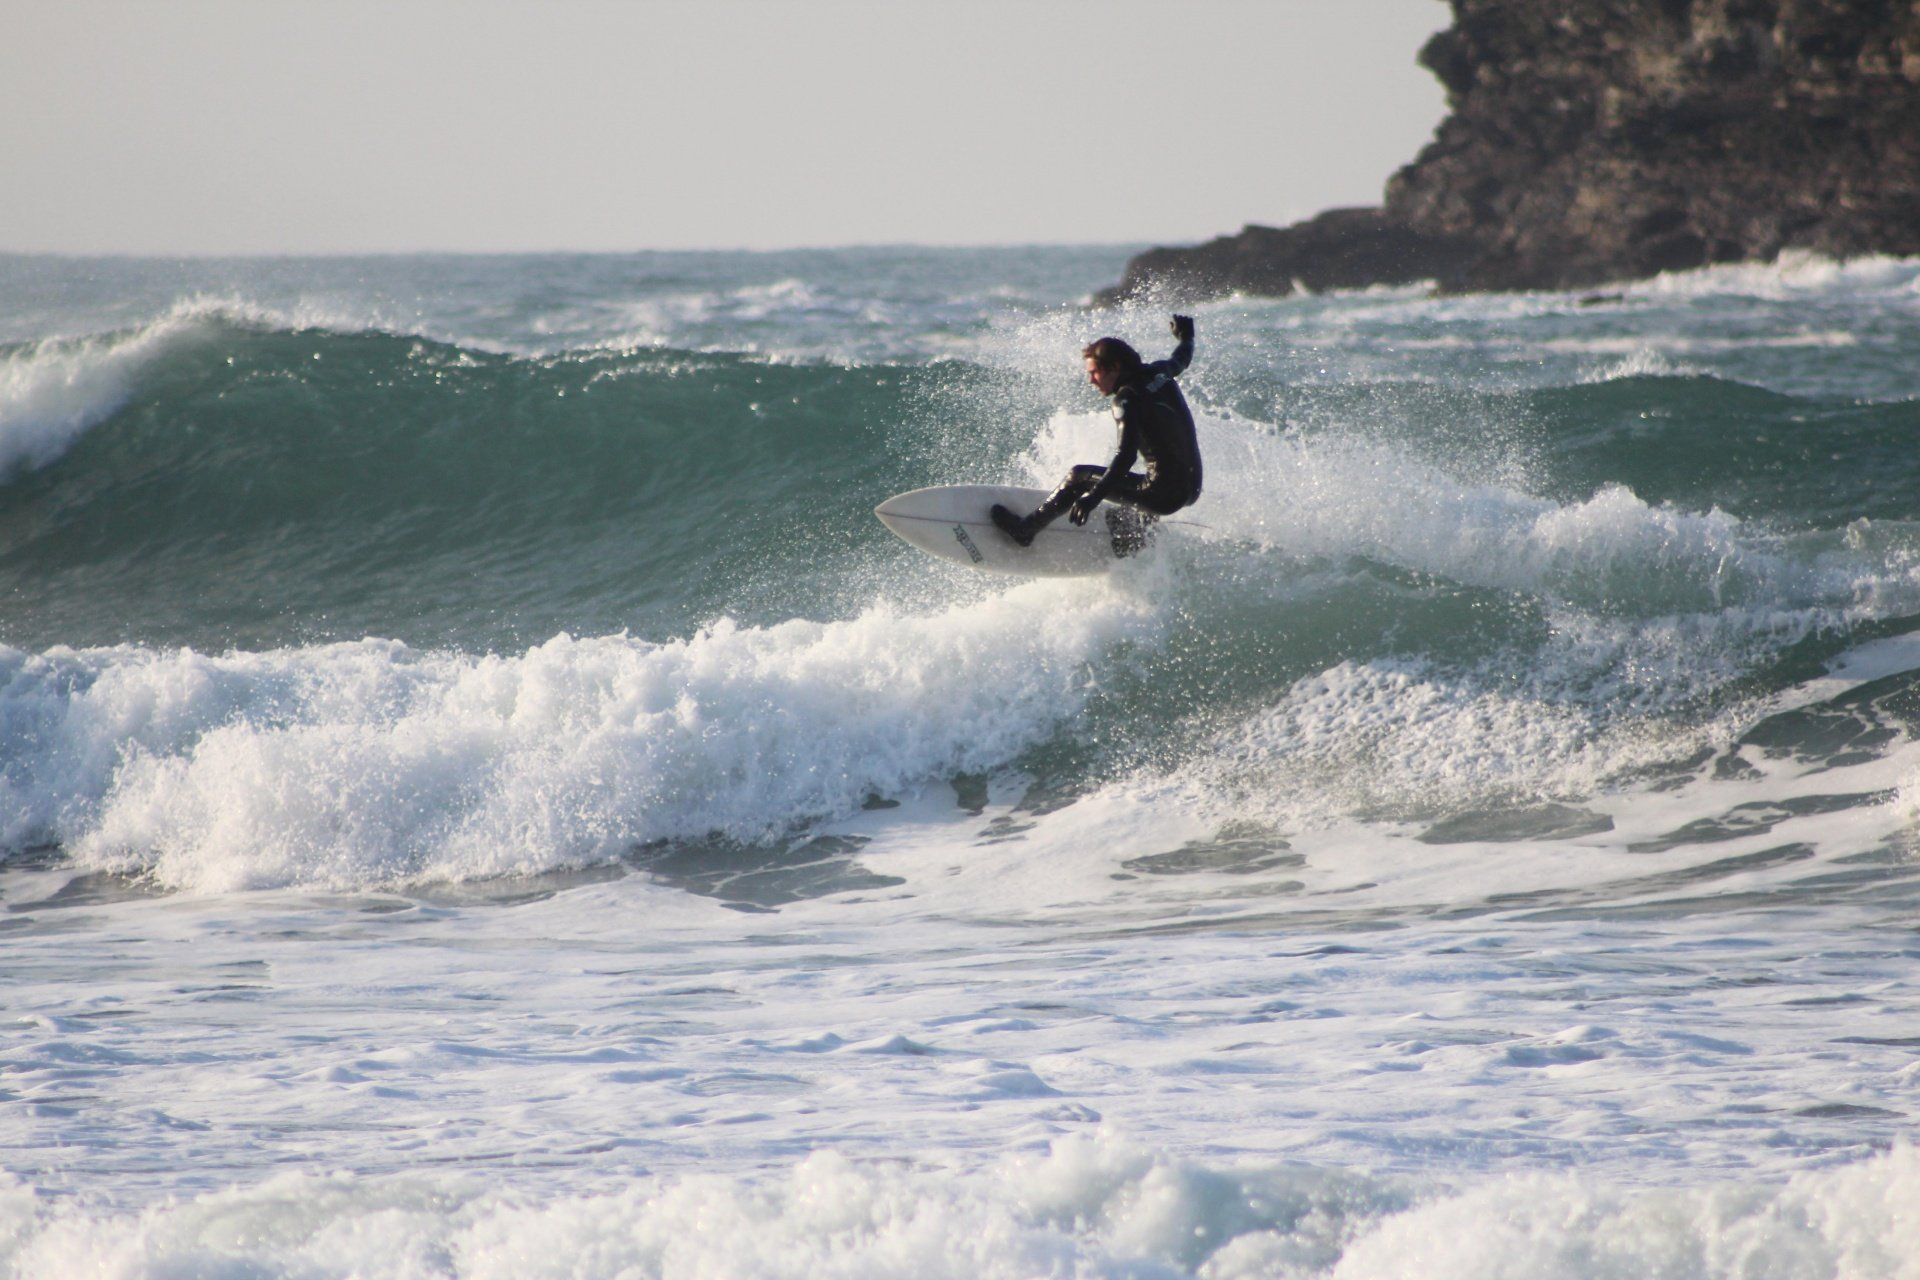 Ian Froome's photo of Portreath - Beach